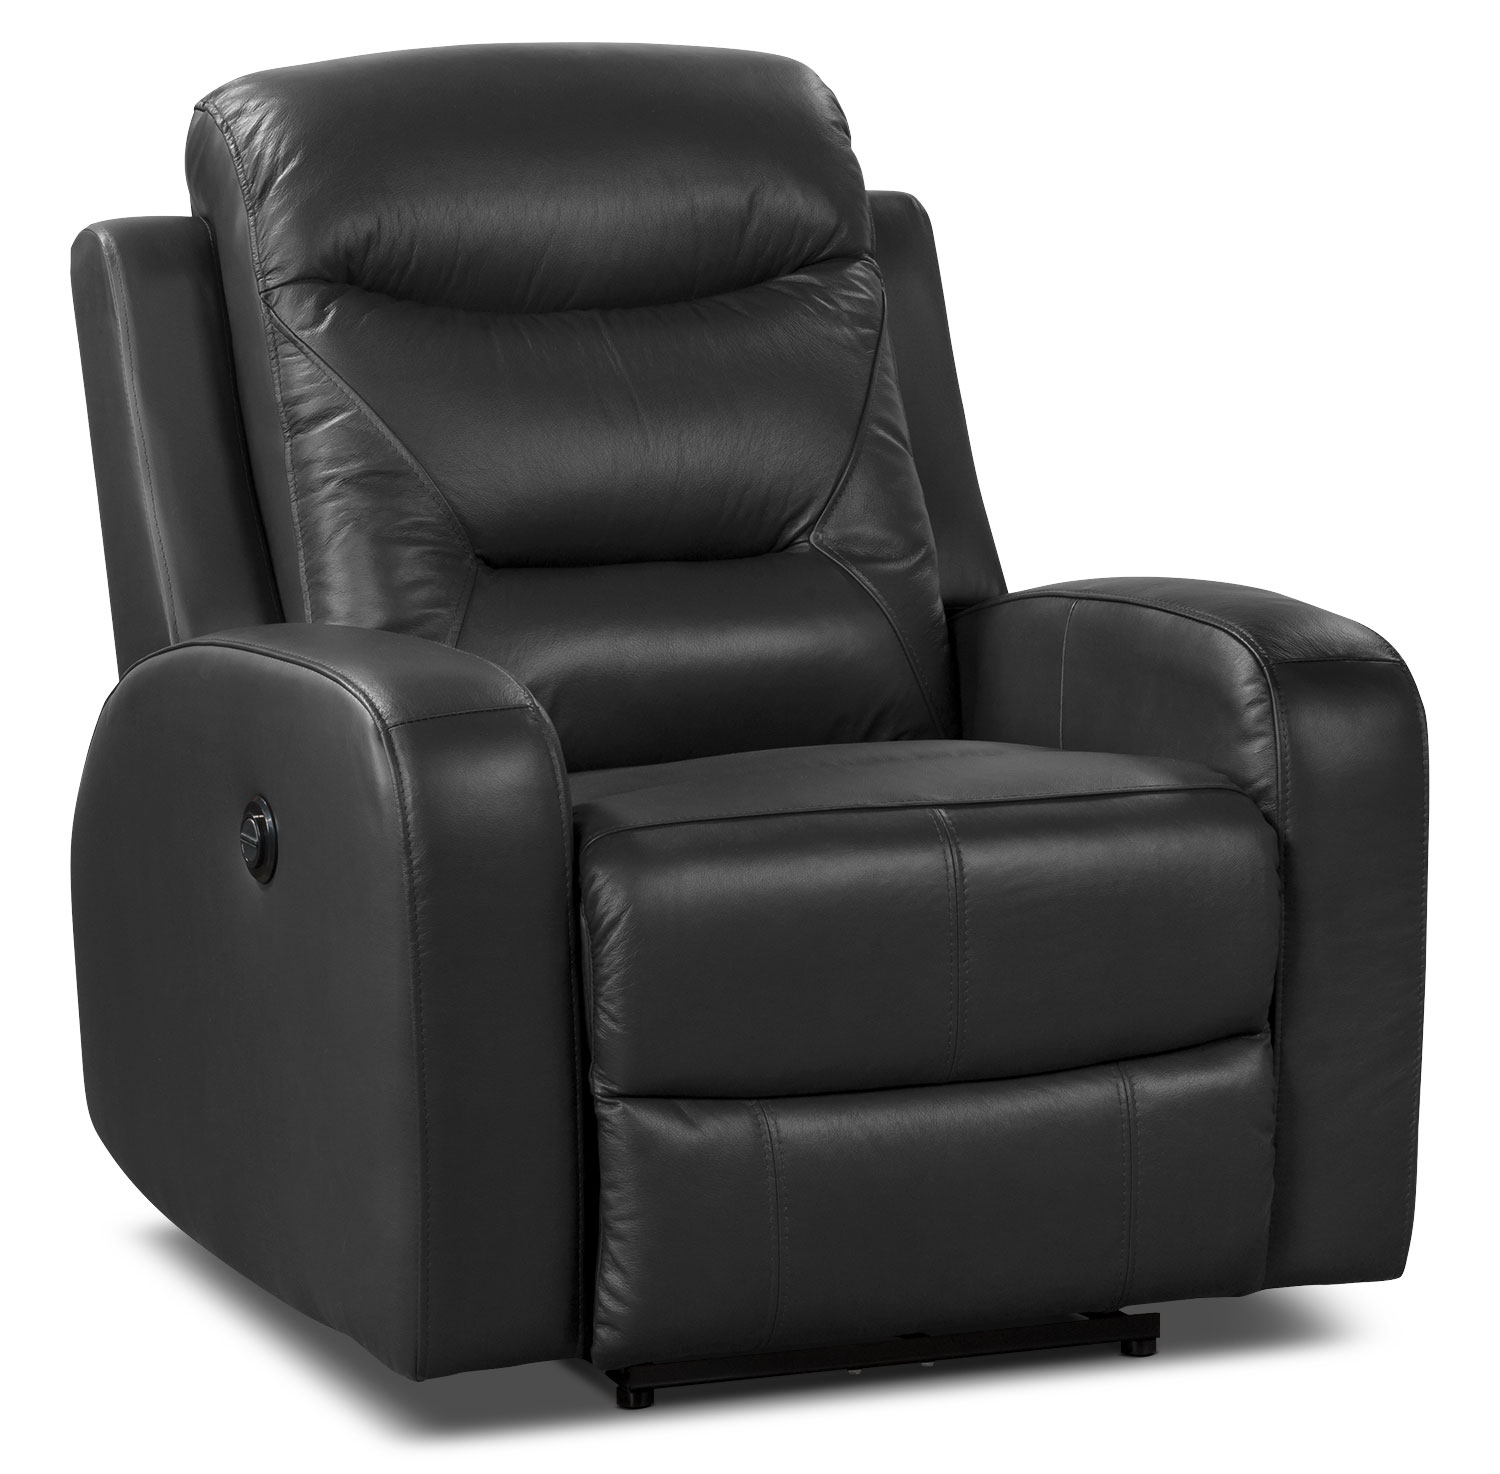 River Genuine Leather Power Reclining Chair – Black